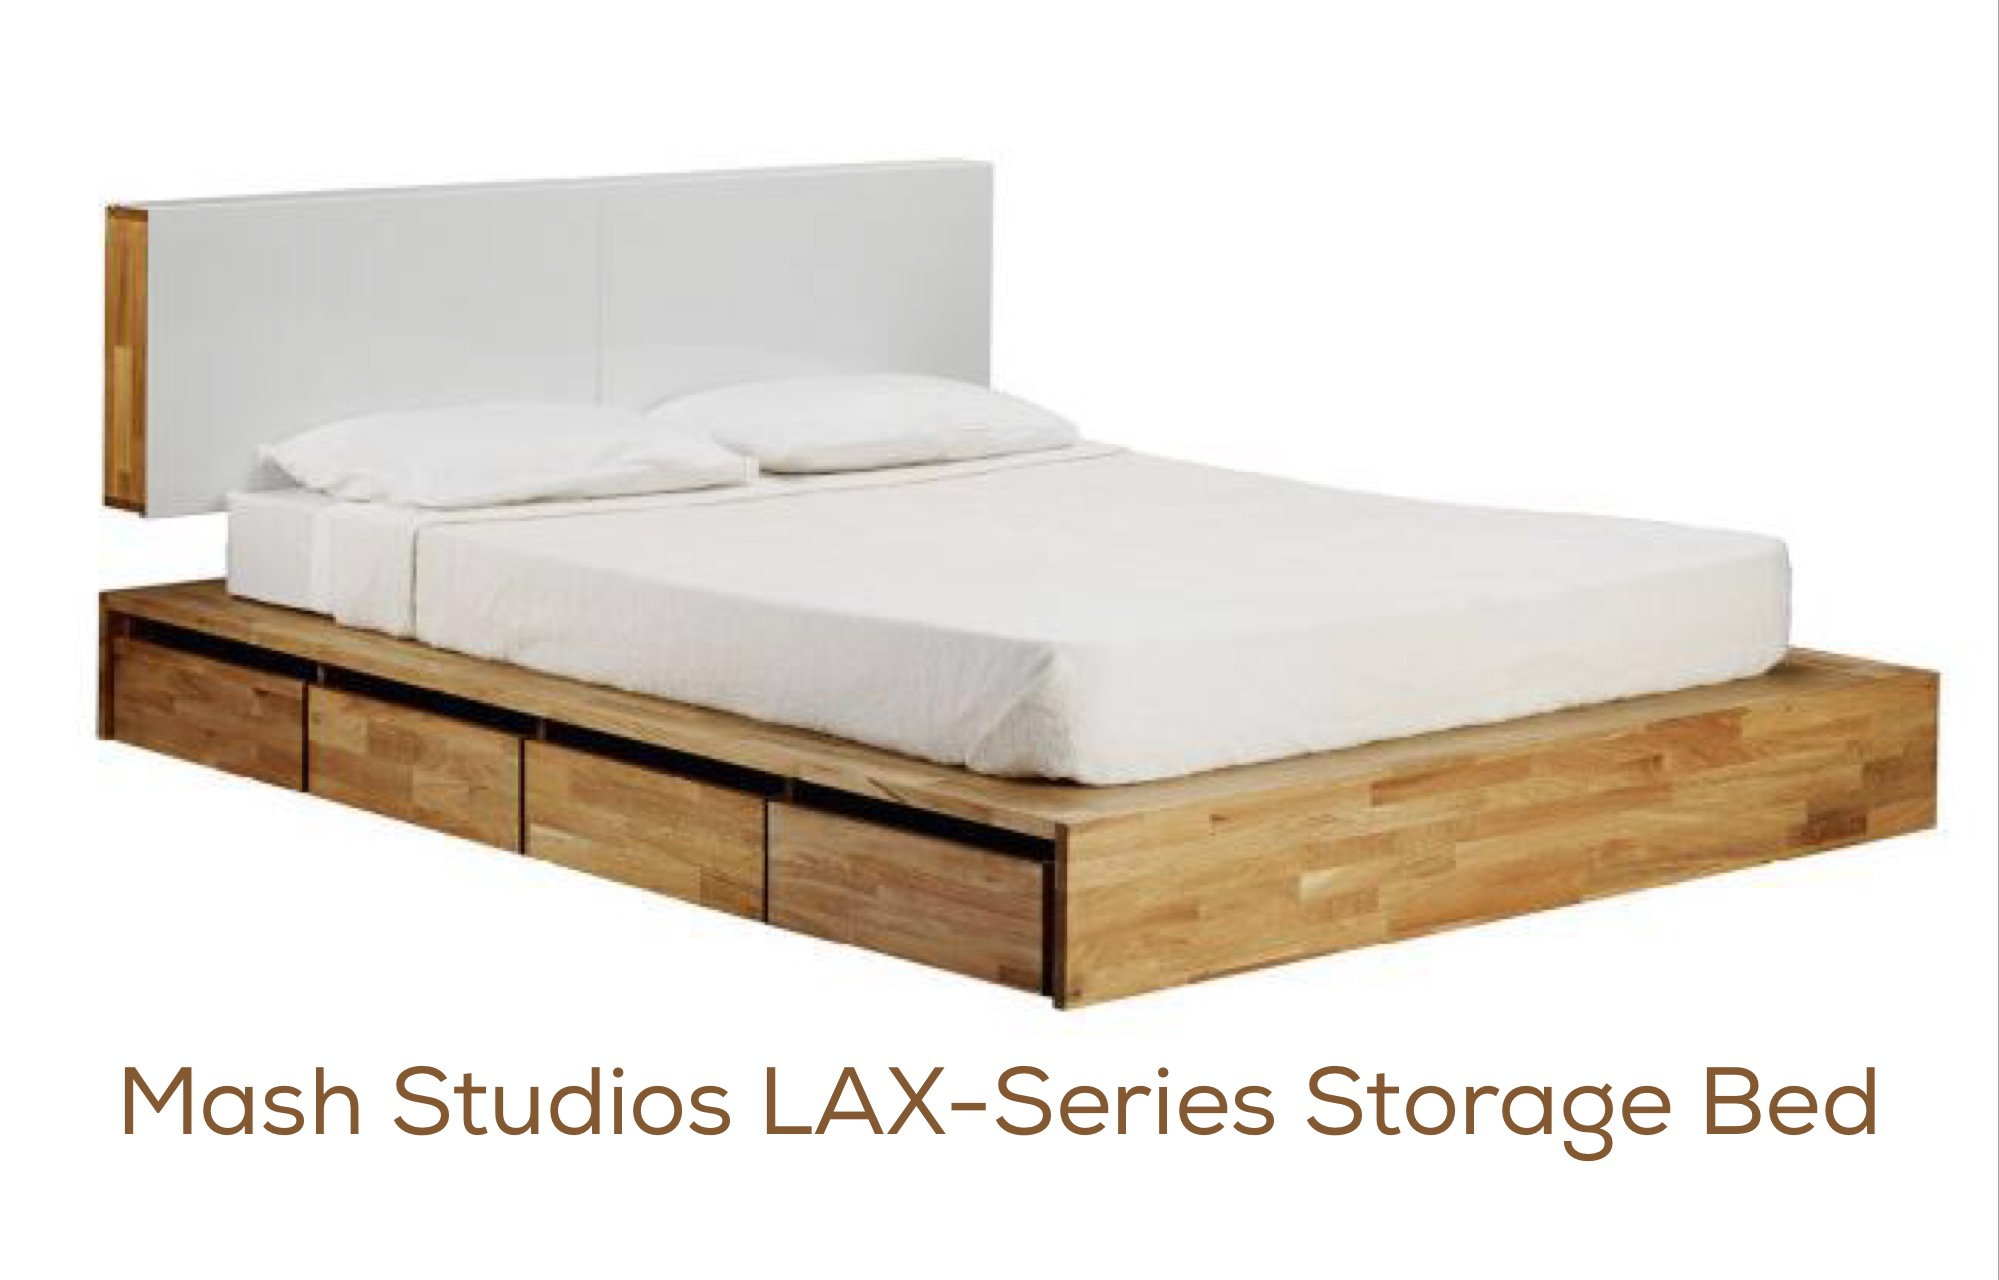 Mash Studios Laxseries Storage Bed